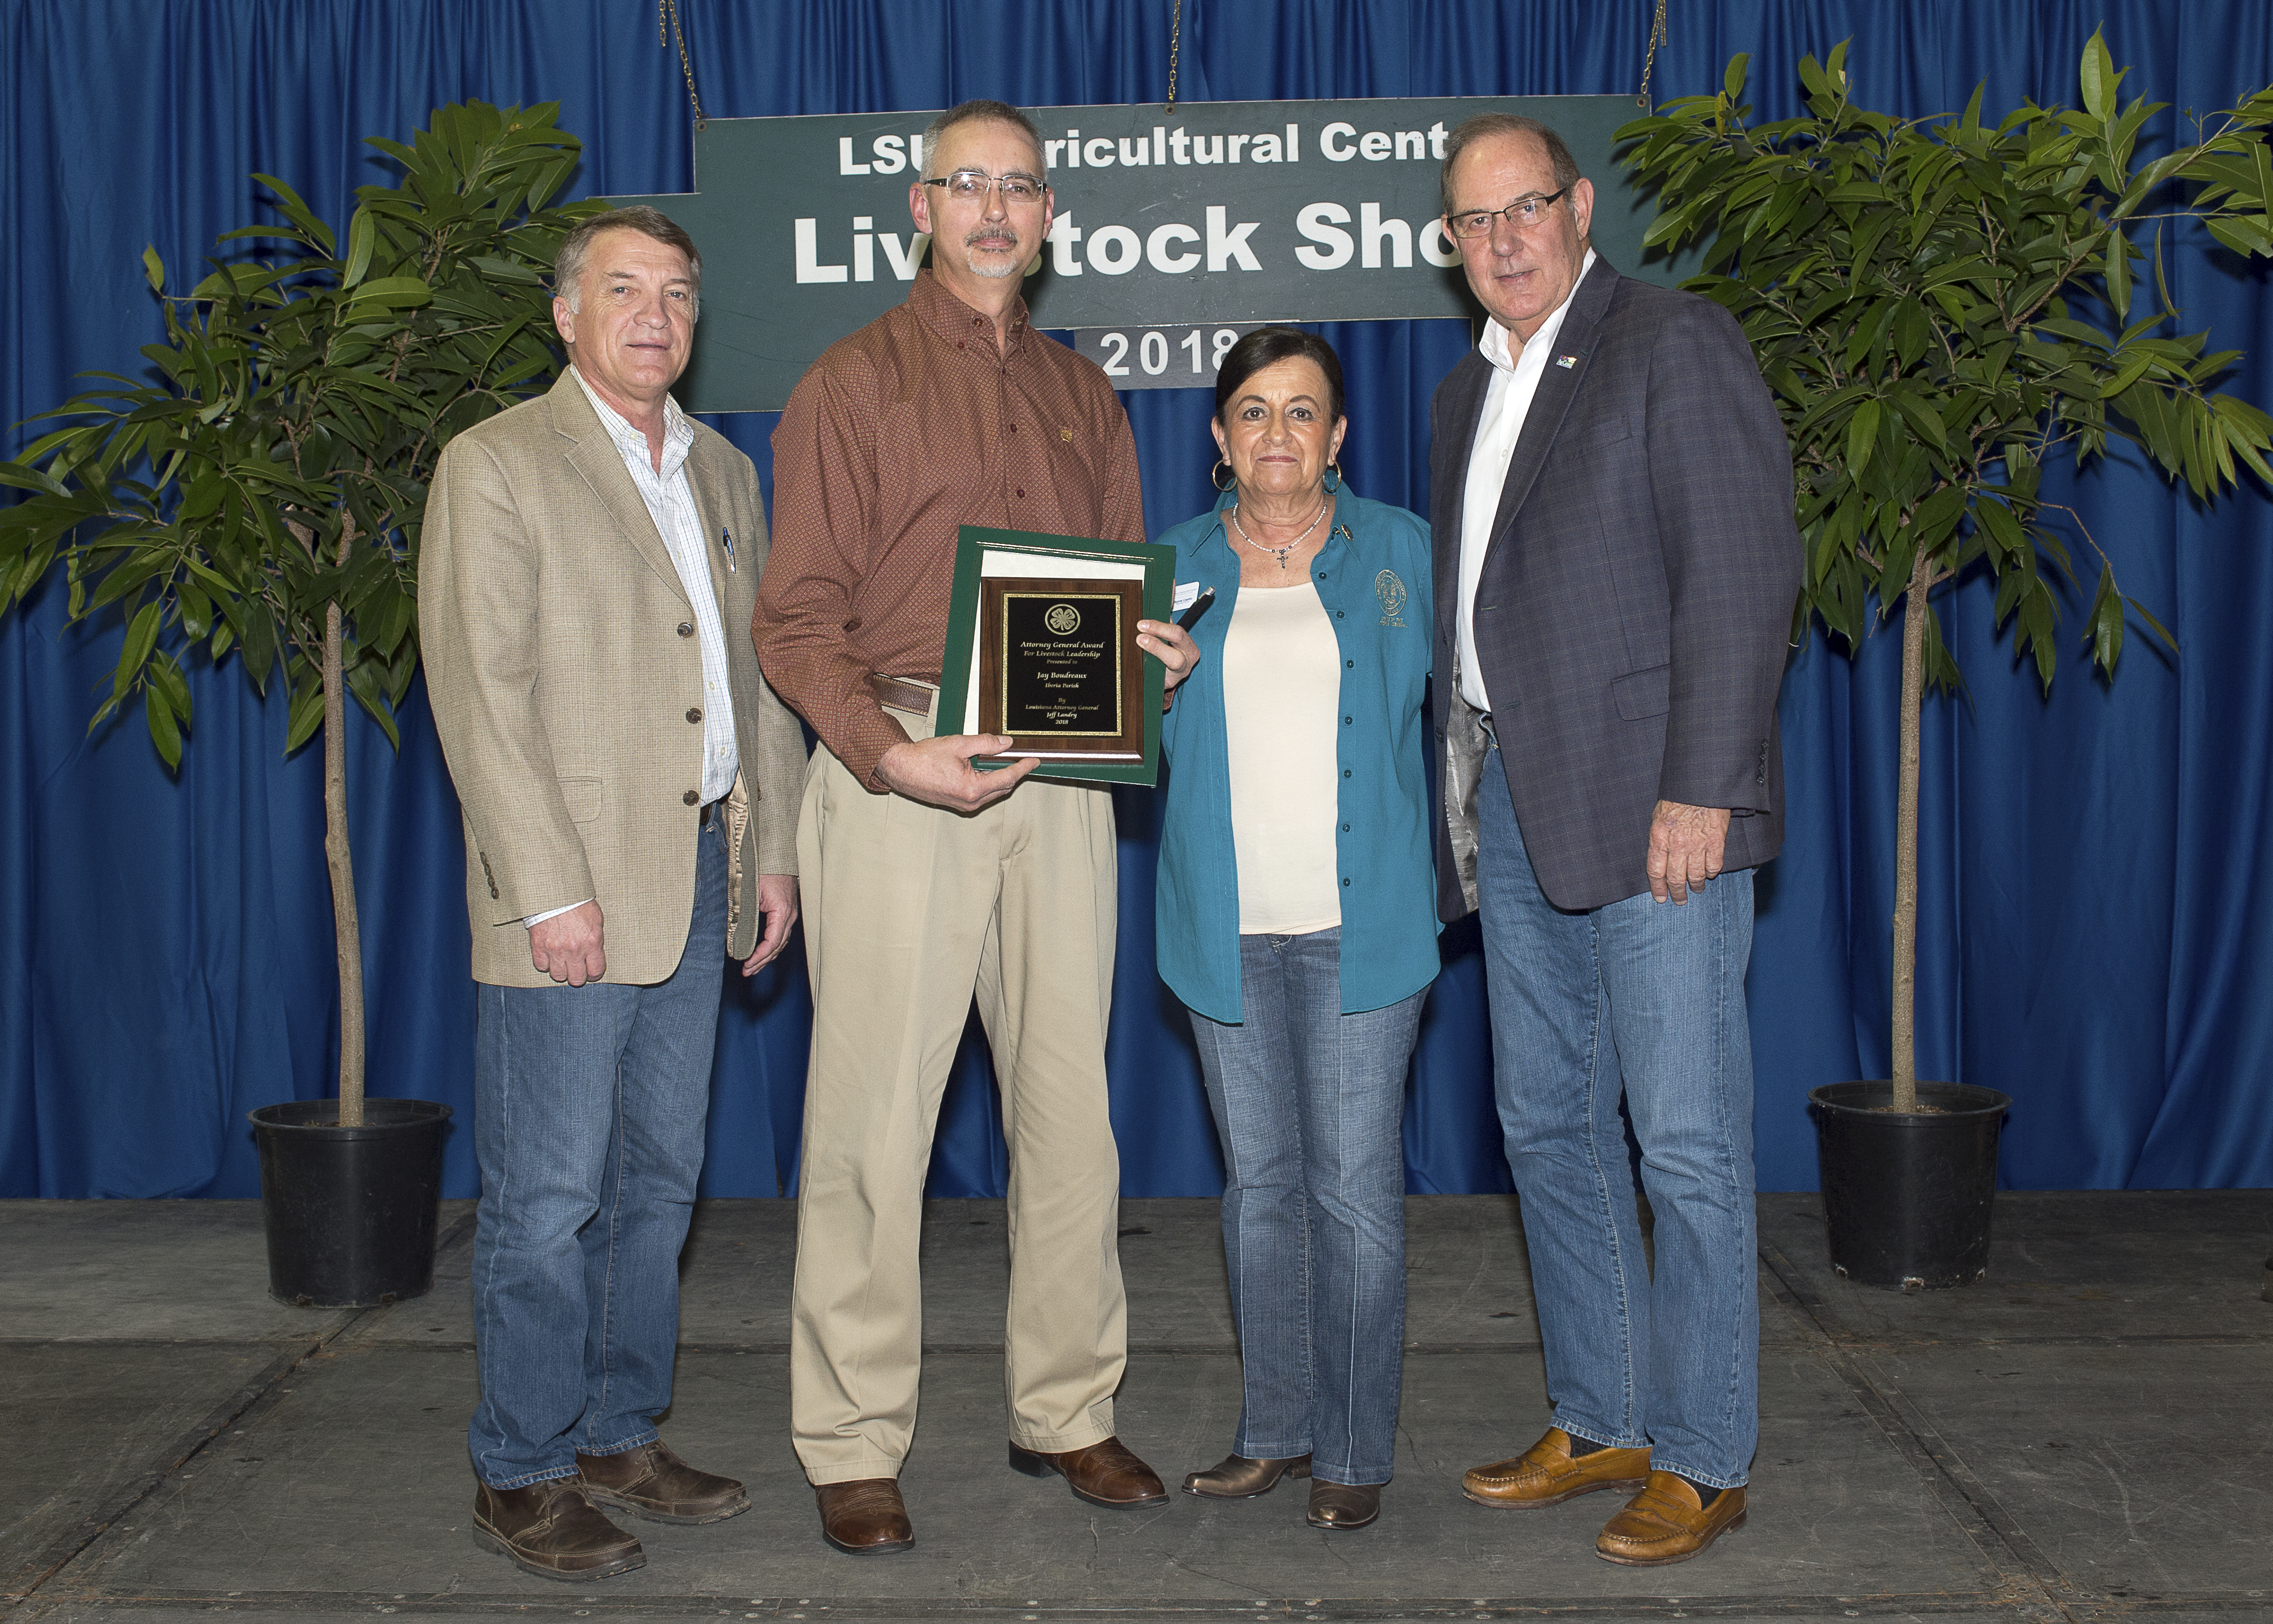 Livestock show awards honor 4-H, FFA members, volunteer